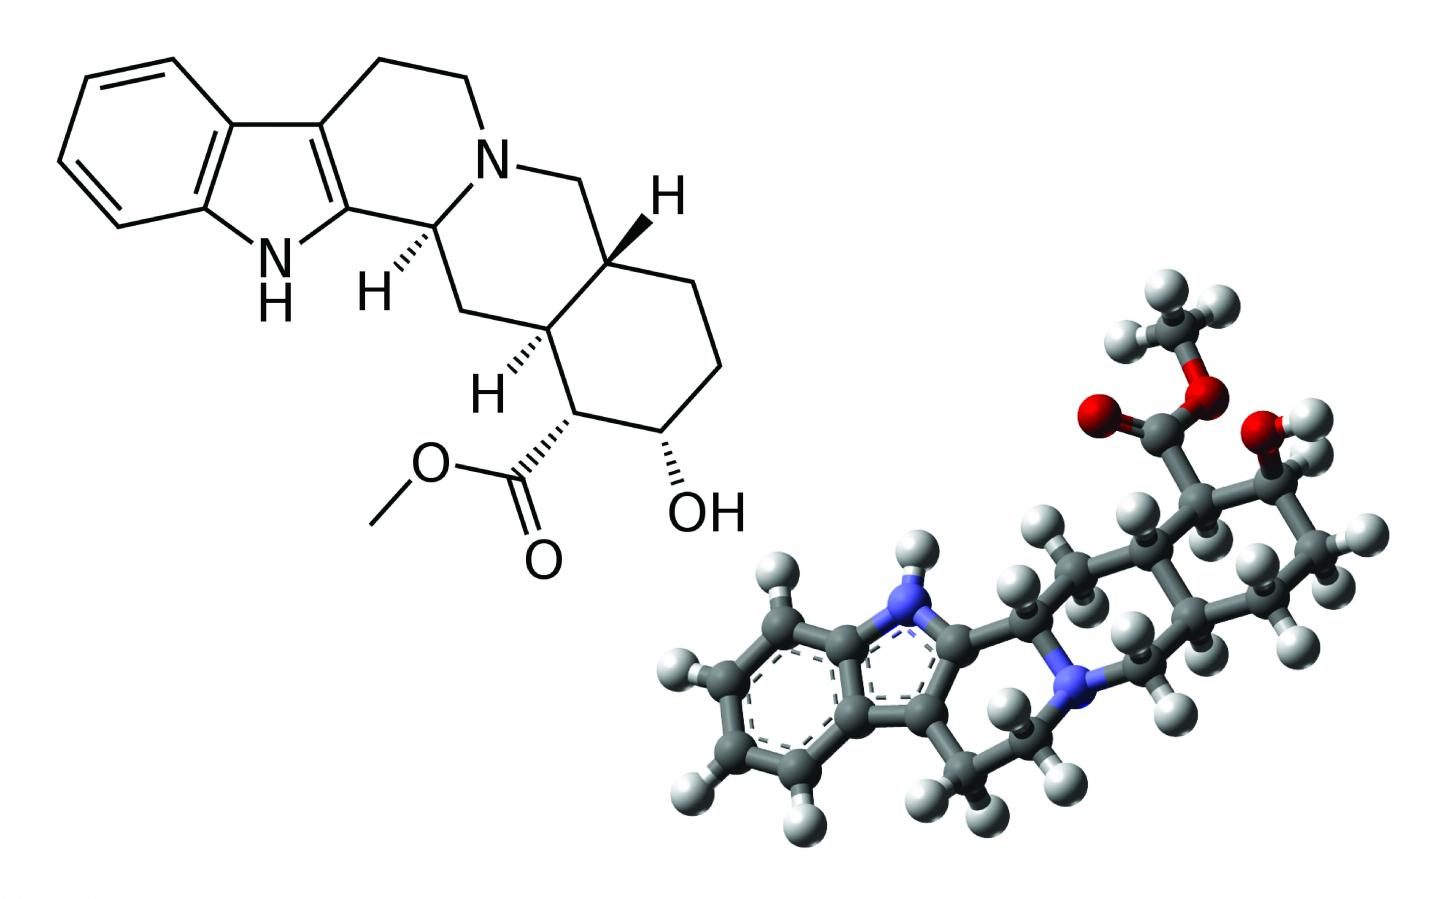 2-D and 3-D Structure of Yohimbine